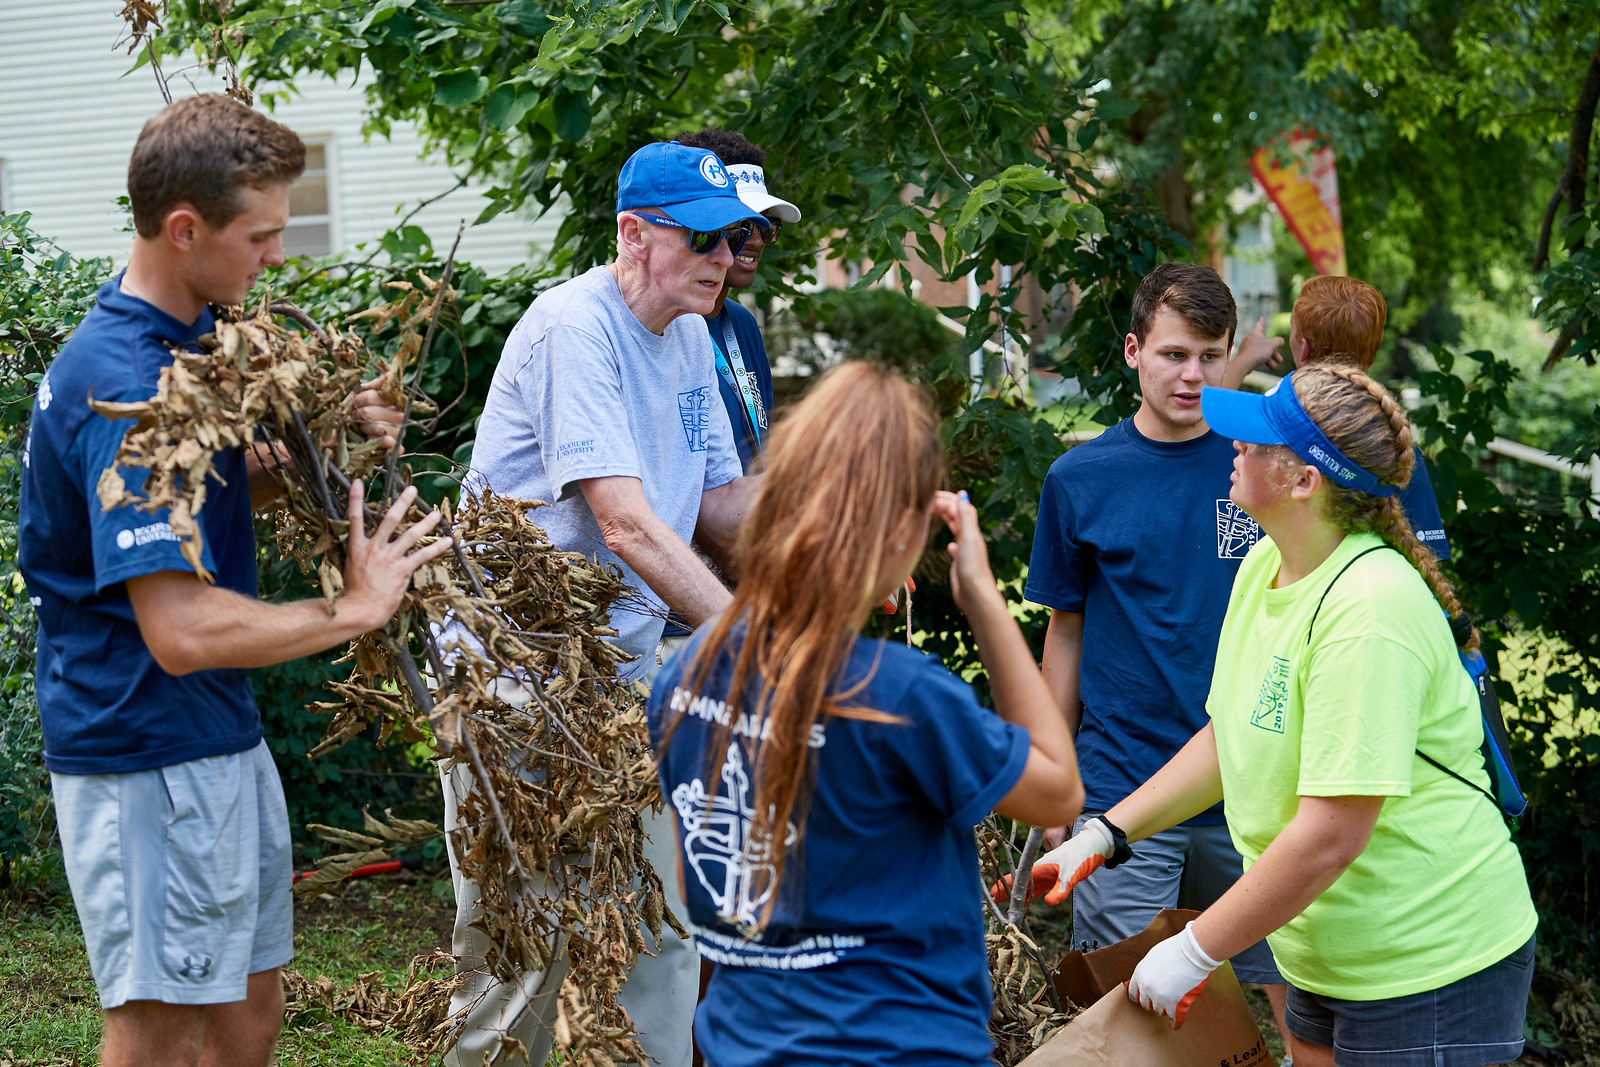 Rockhurst University's president, Rev. Thomas B. Curran, S.J., volunteered with first-year students during the annual Finucane Service Project in Kansas City, MO (photo by Rockhurst University)